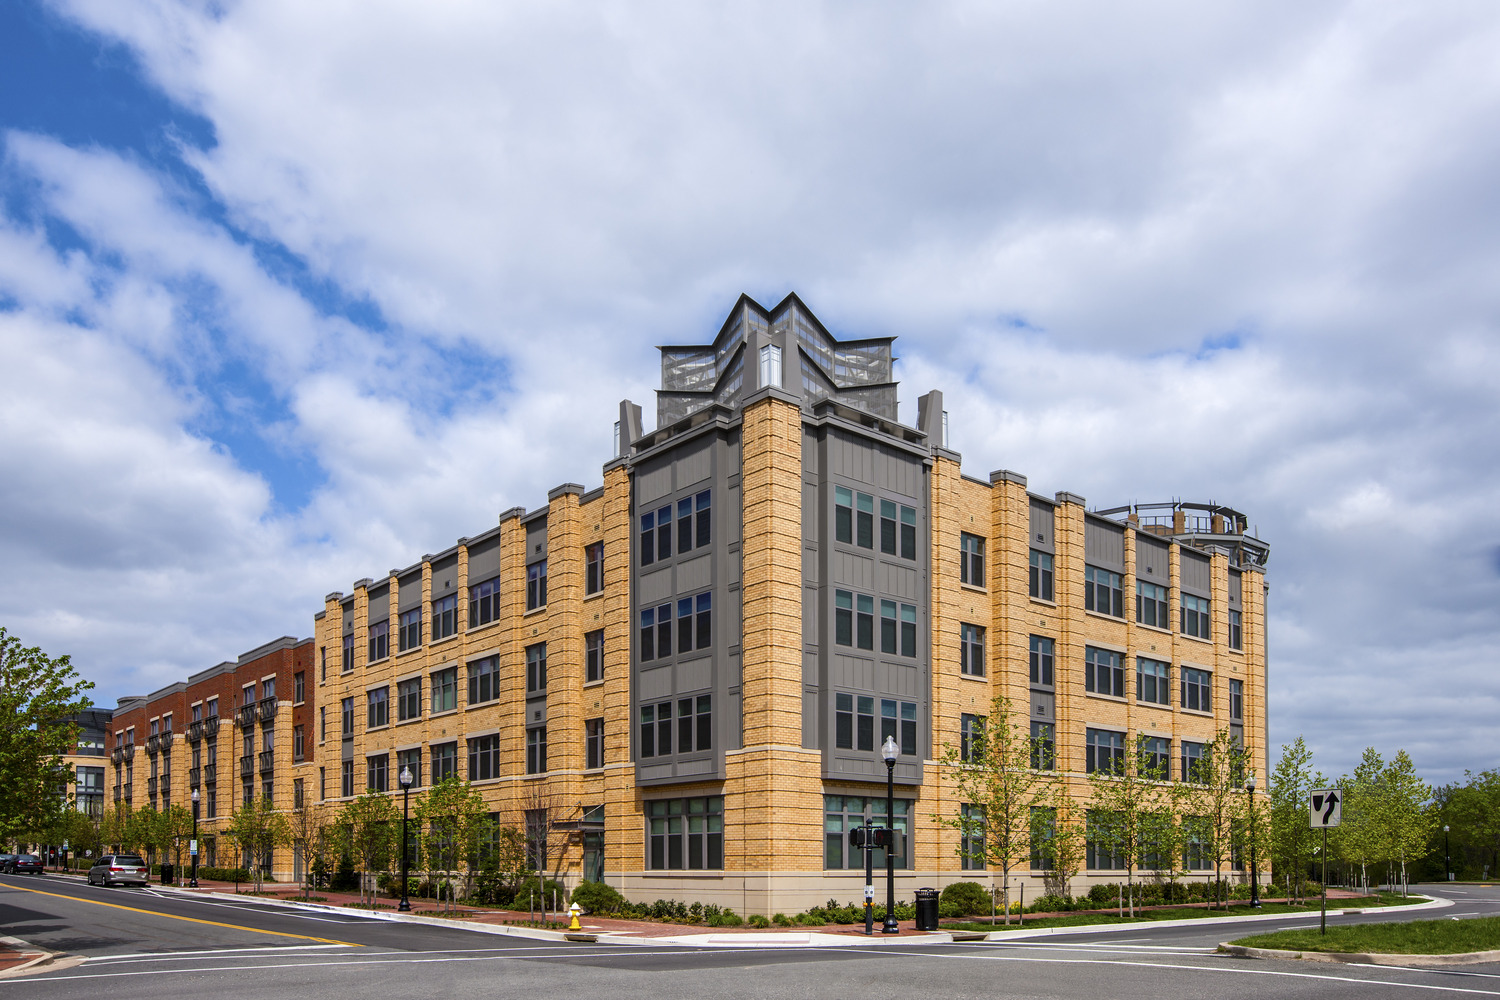 CBG builds Post Carlyle Square, a 354 Luxury Apartments Across Two Buildings Over Below-Grade Garage in Alexandria, VA - Image #3